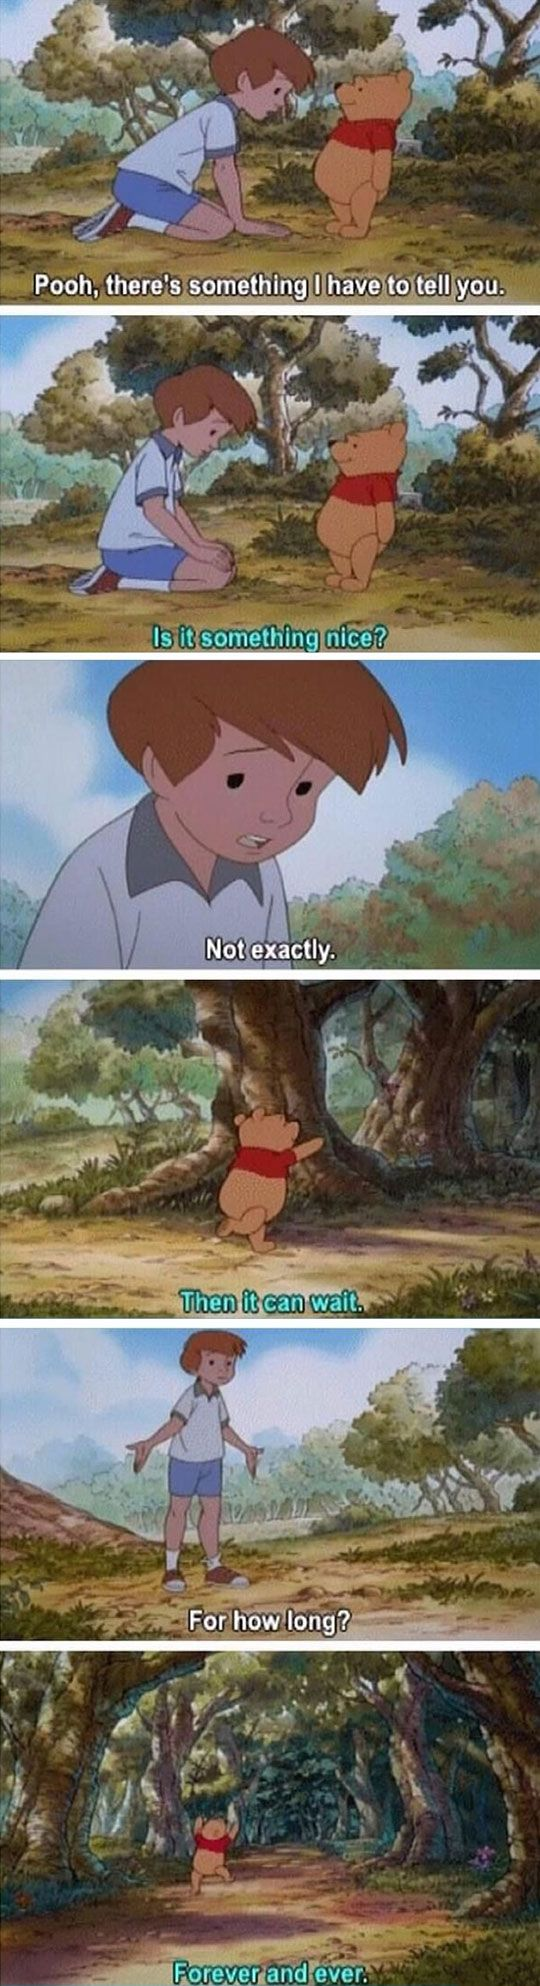 Pooh, there's something I have to tell you...